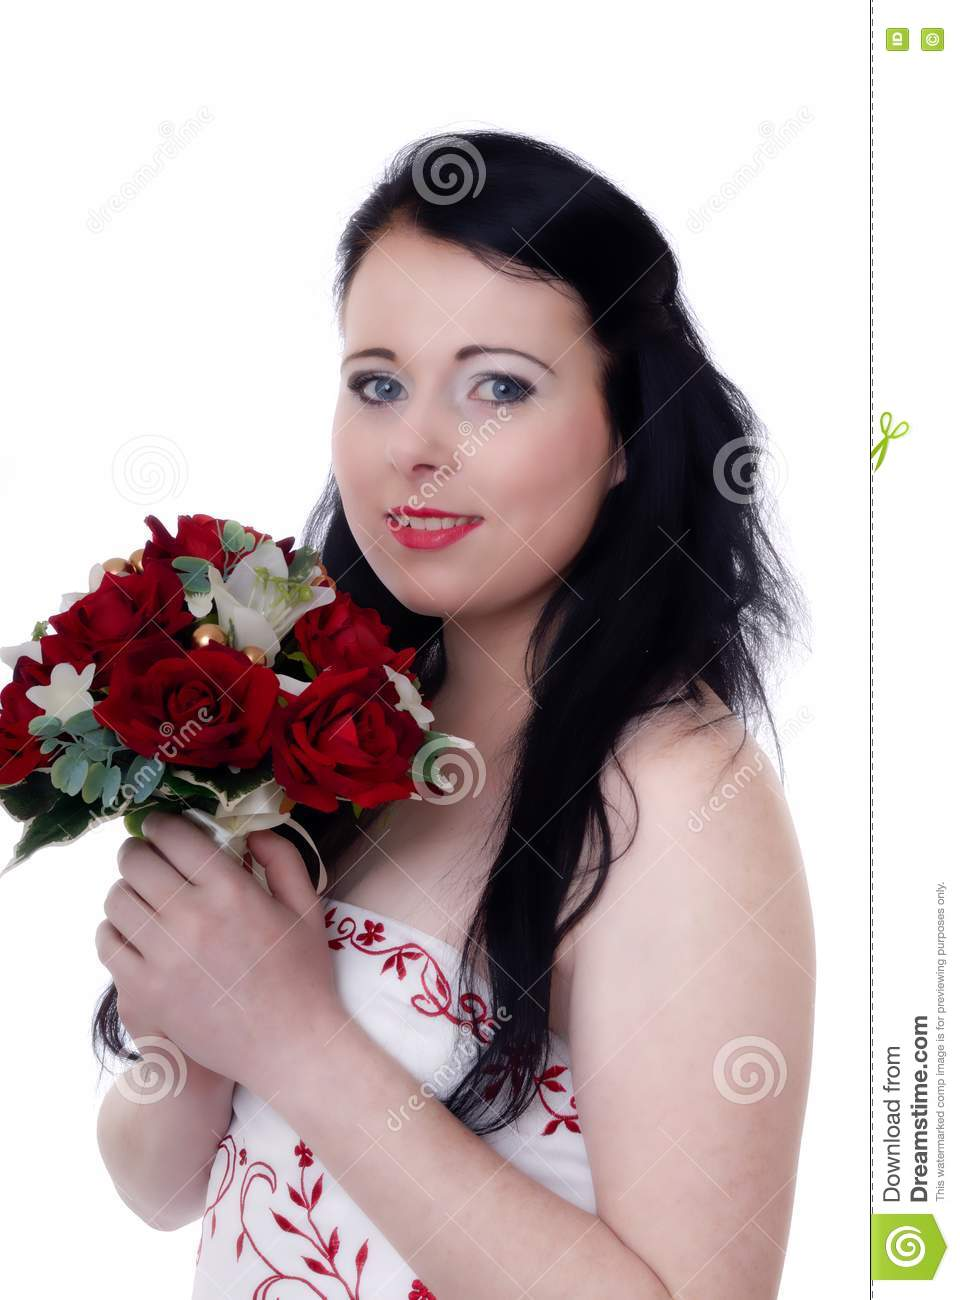 Young bride in white and red wedding dress isolated against white